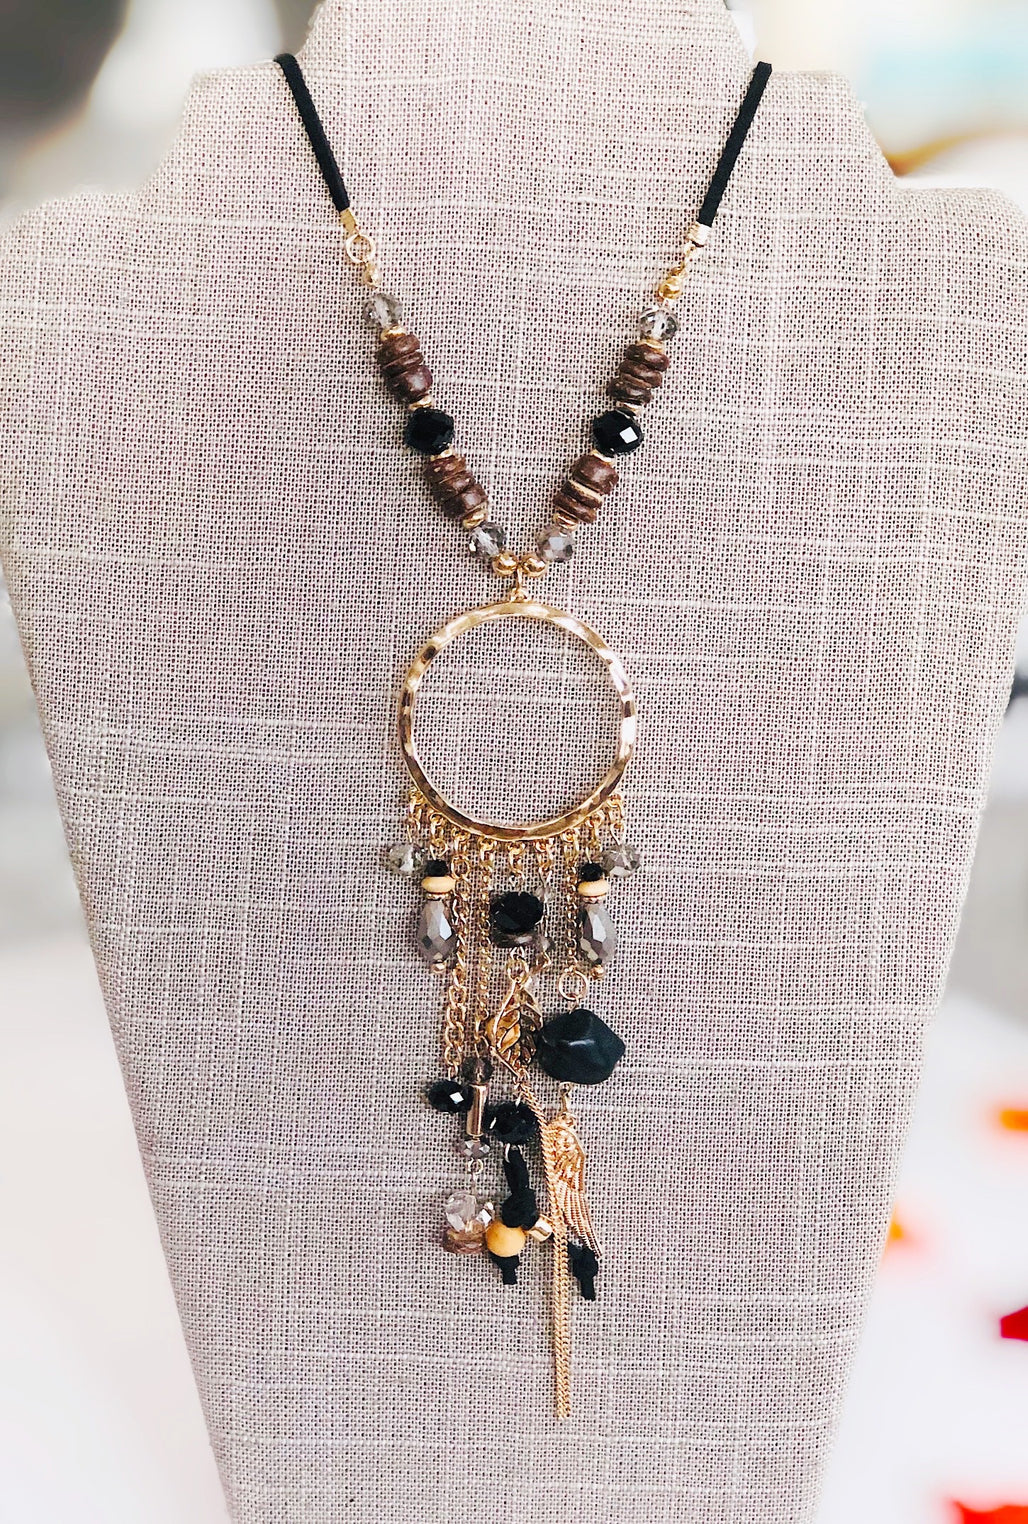 Fall Nights Statement Necklace - Bellamie Boutique